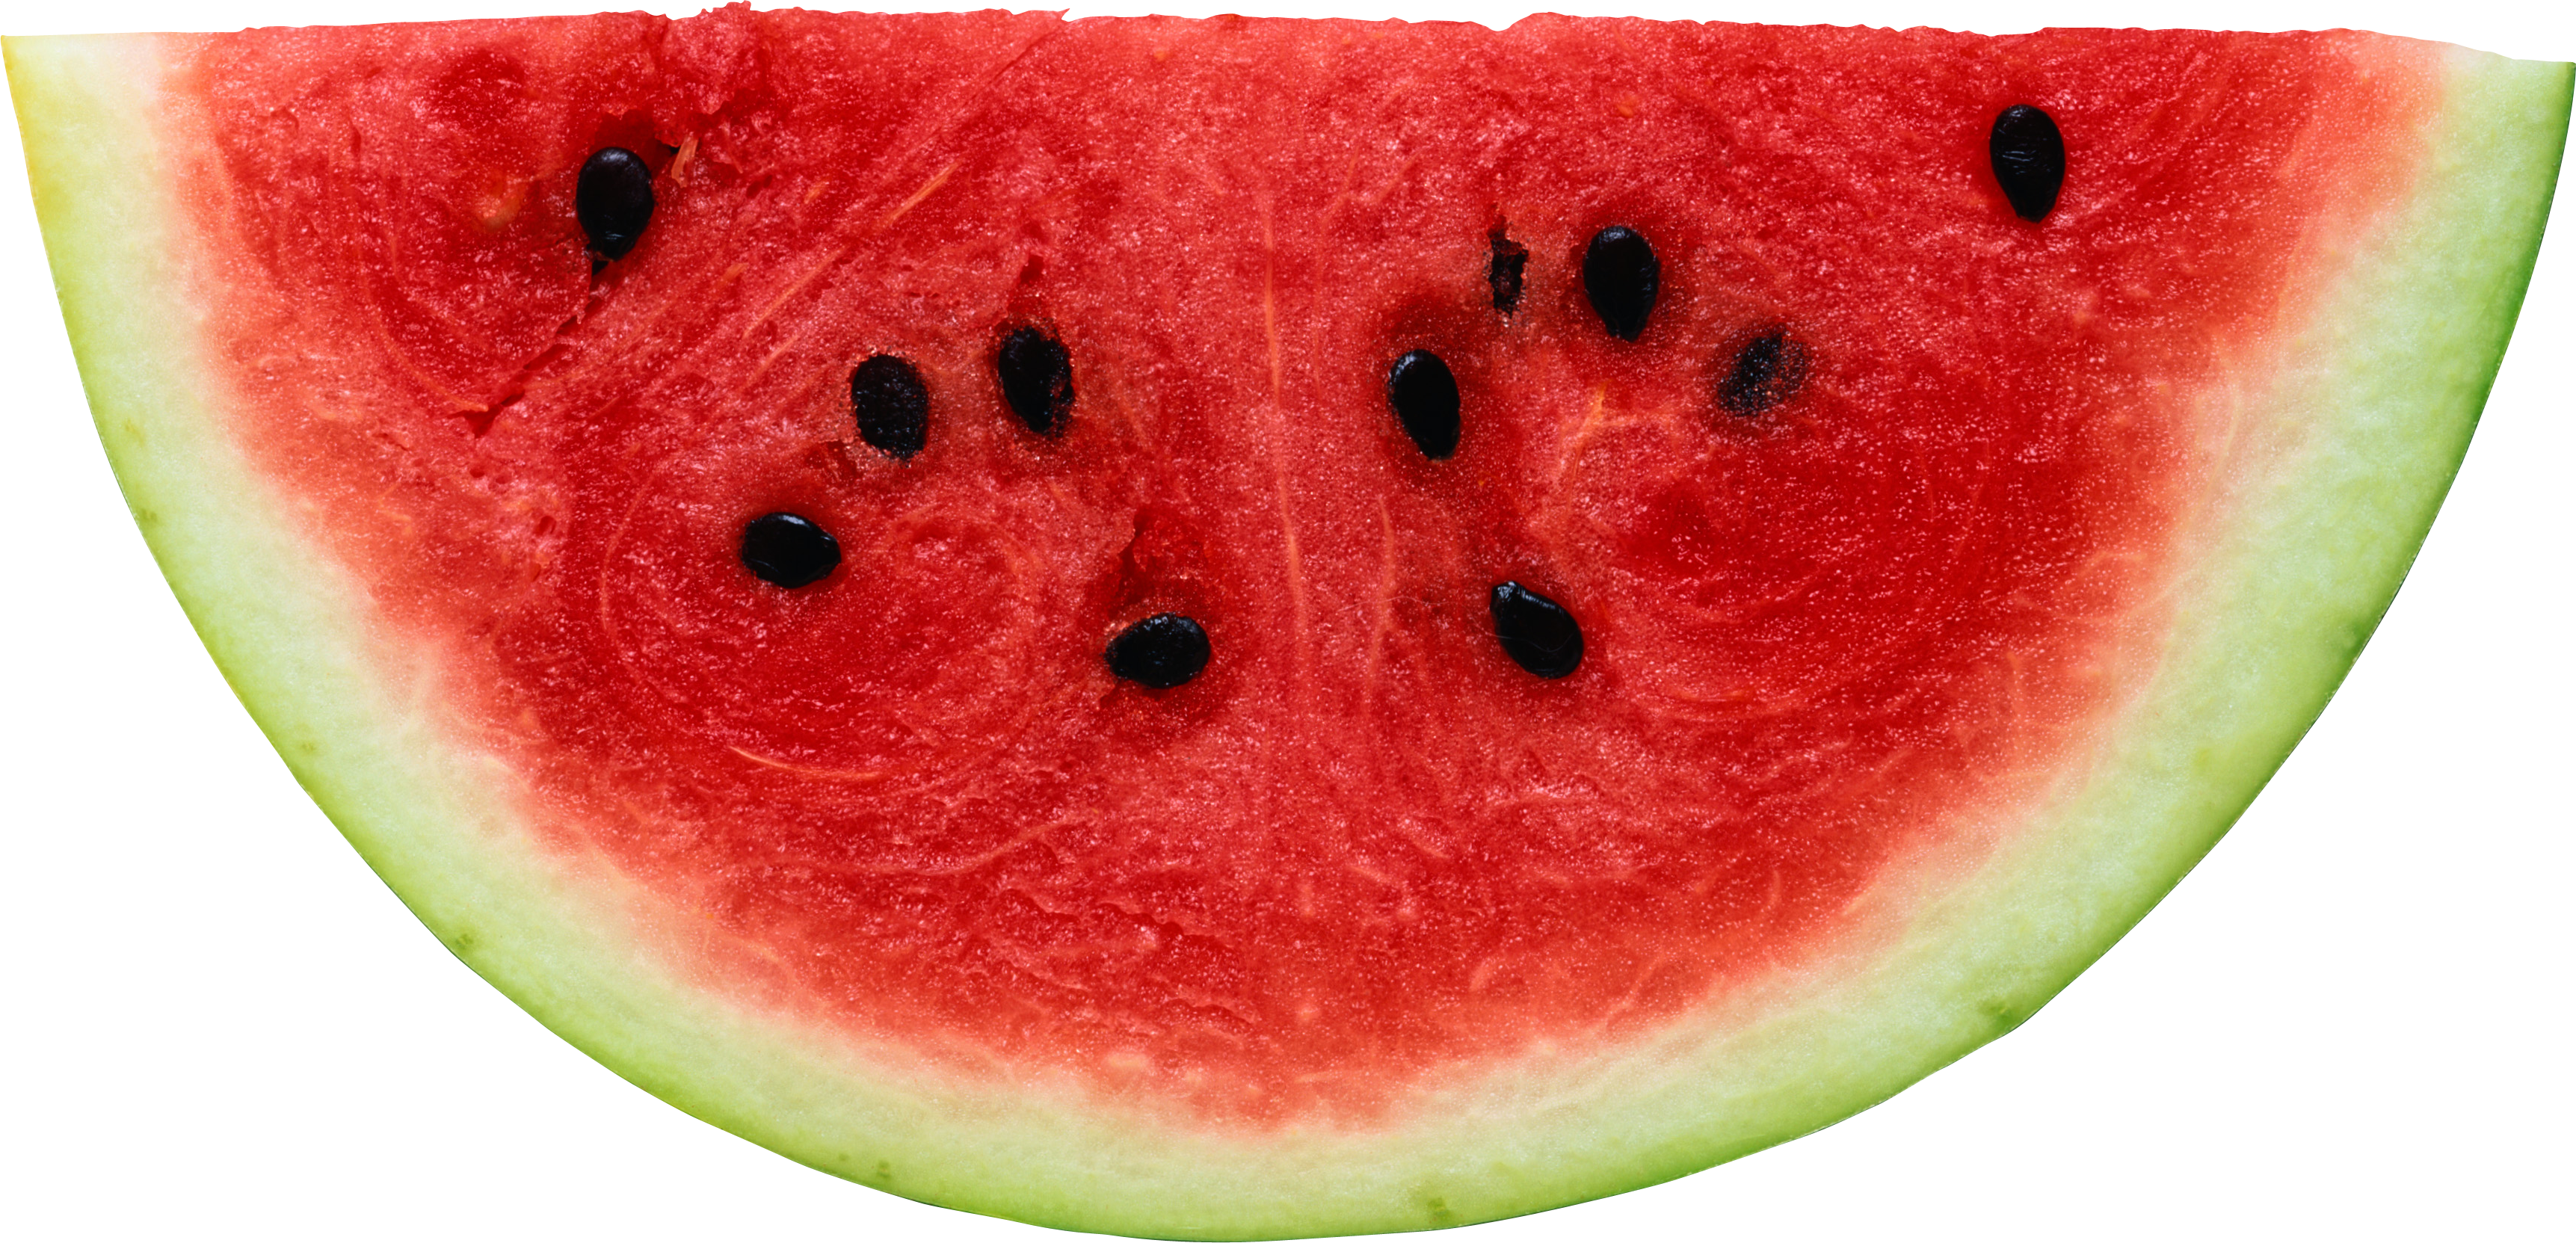 Watermelon PNG Image - Watermelon PNG